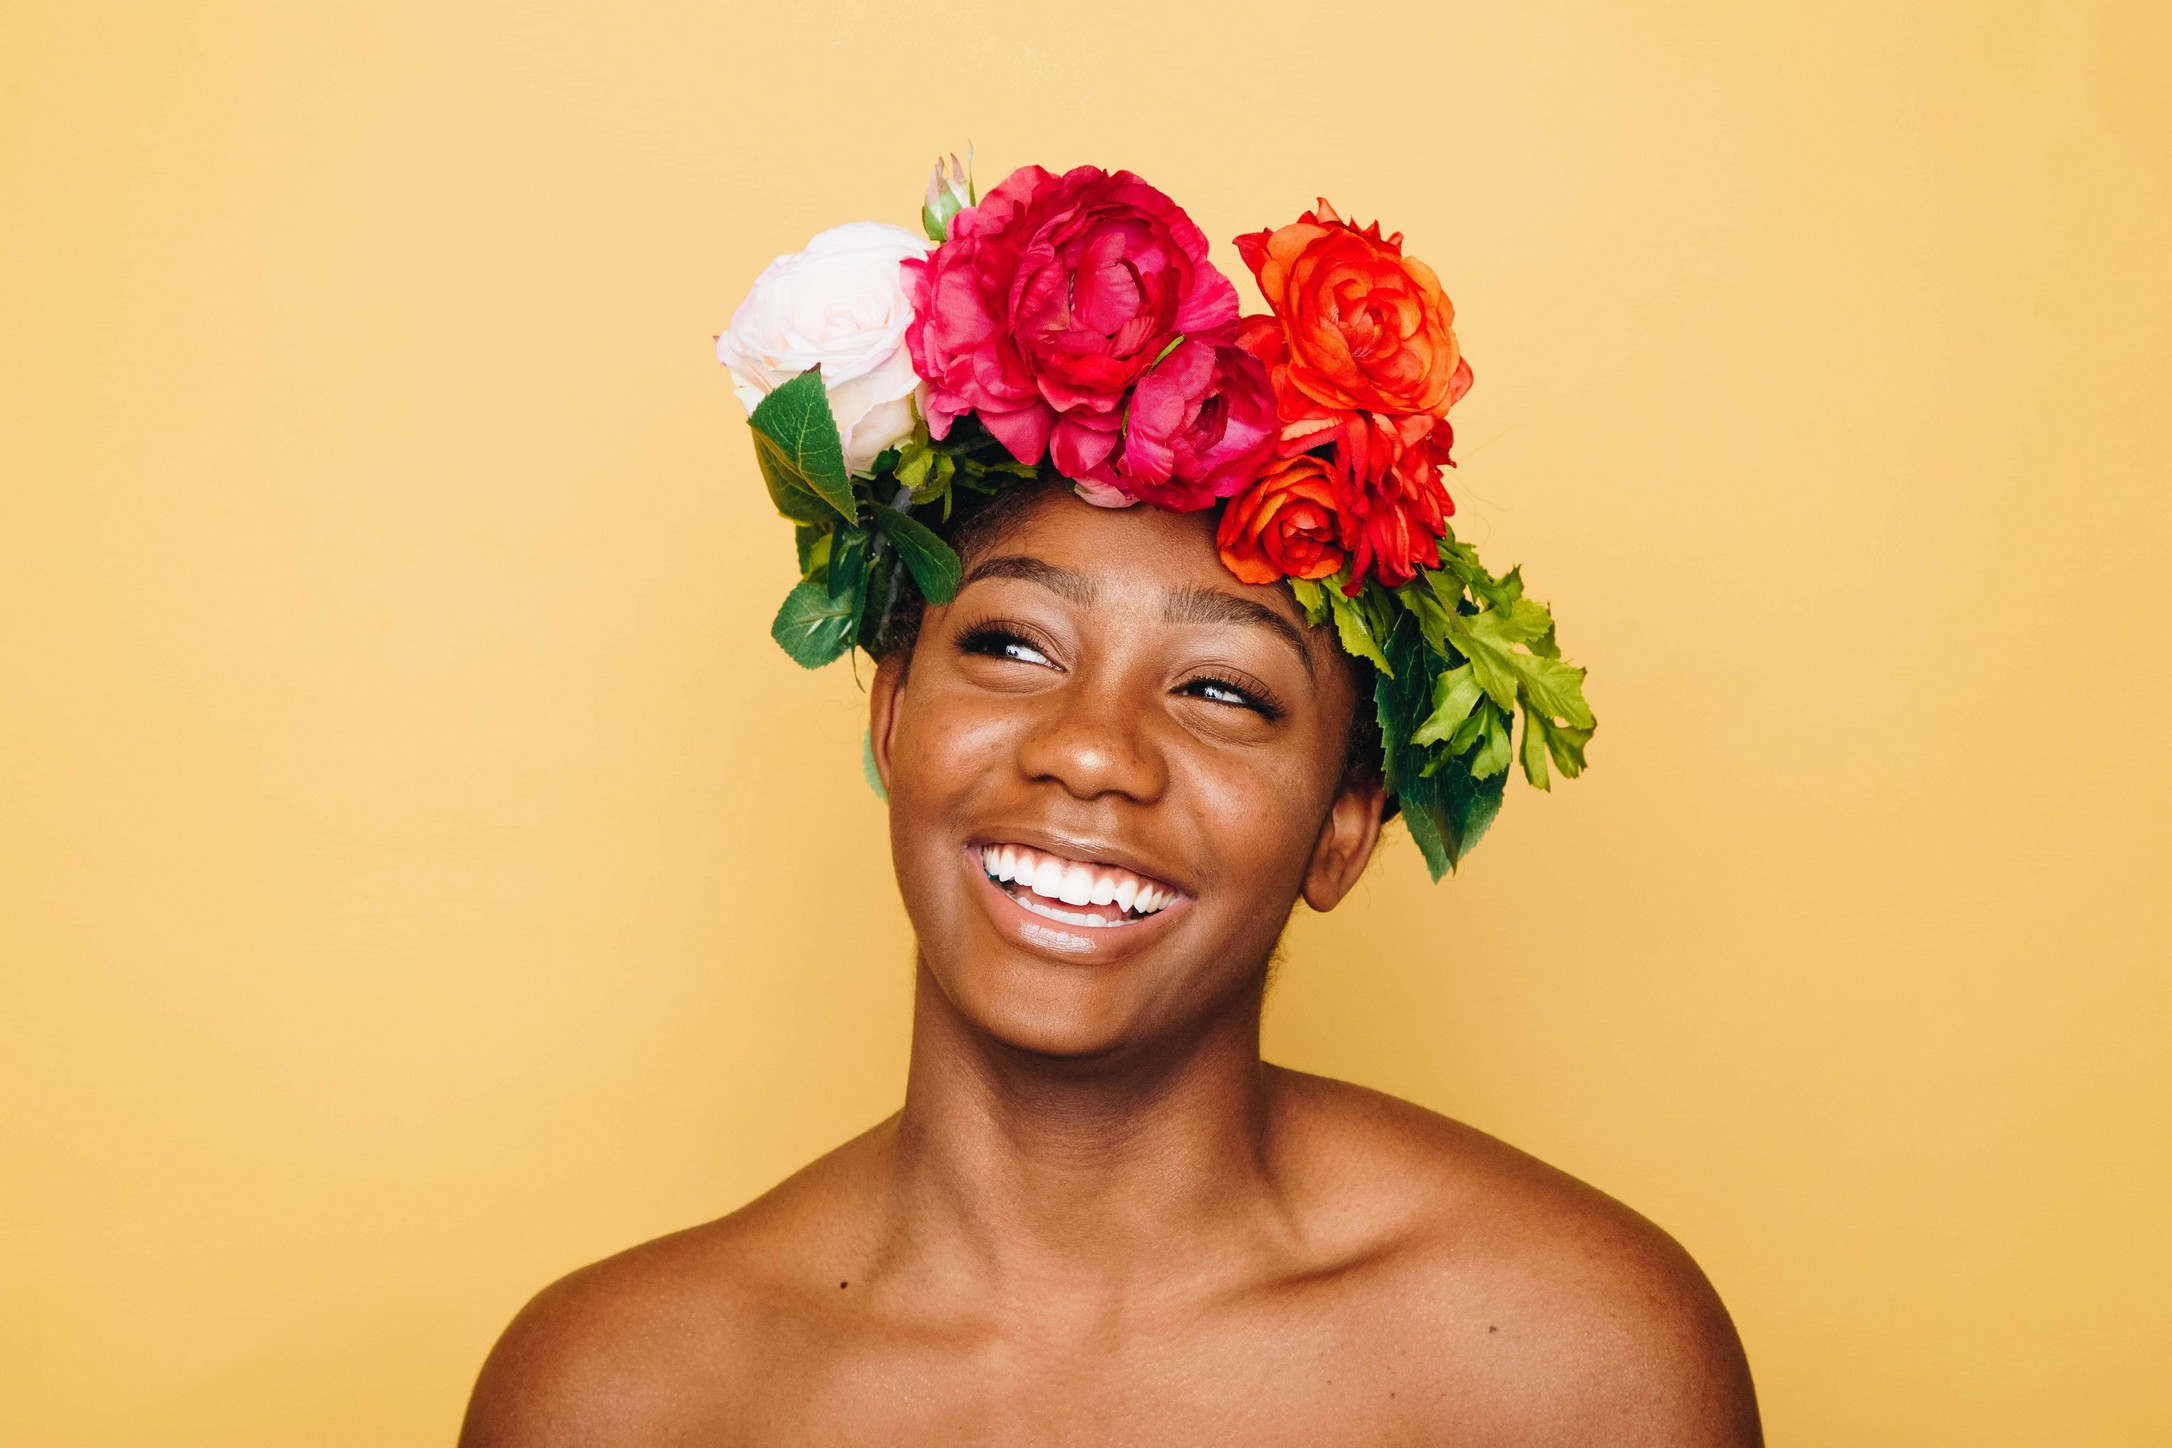 woman with flowers around her head, like a crown, smiling towards the camera with an orange background